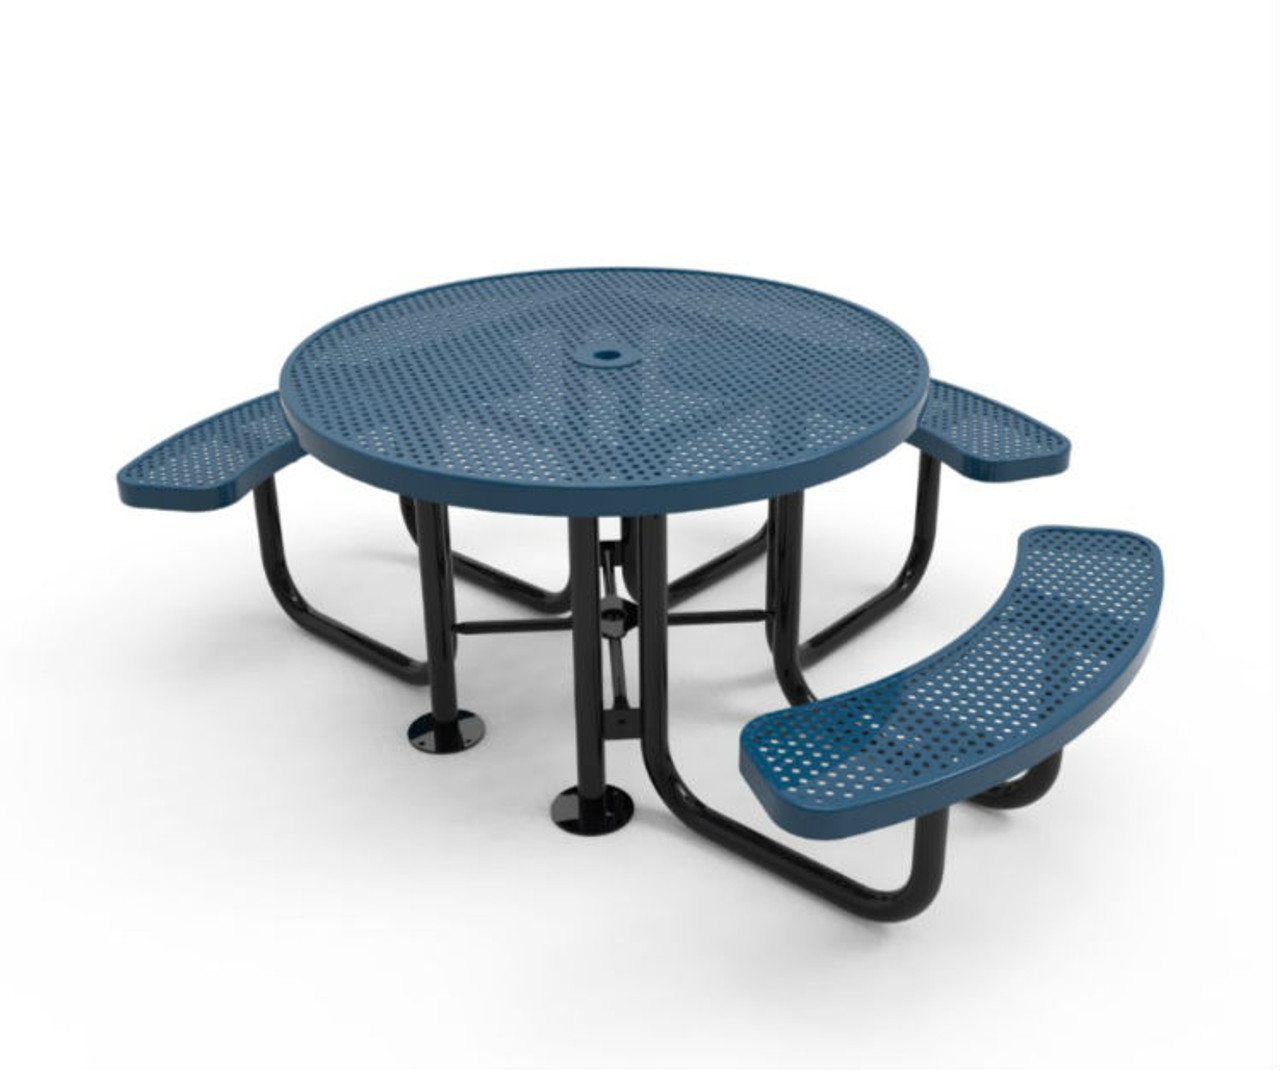 Punched Steel Round Table - 3 Bench Seats